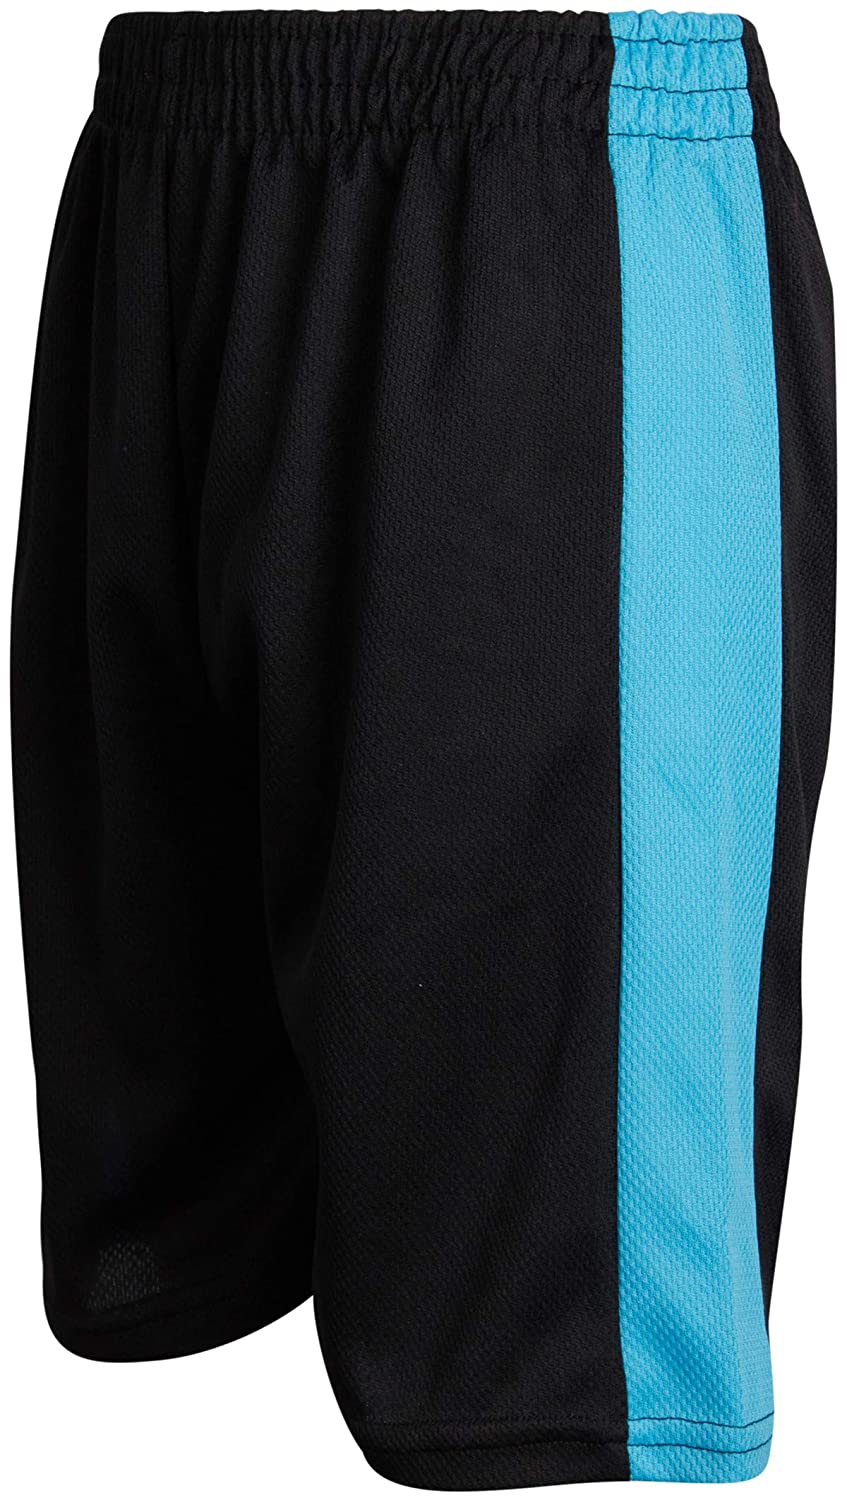 4 Pack Mad Game Boys Athletic Performance Basketball Shorts